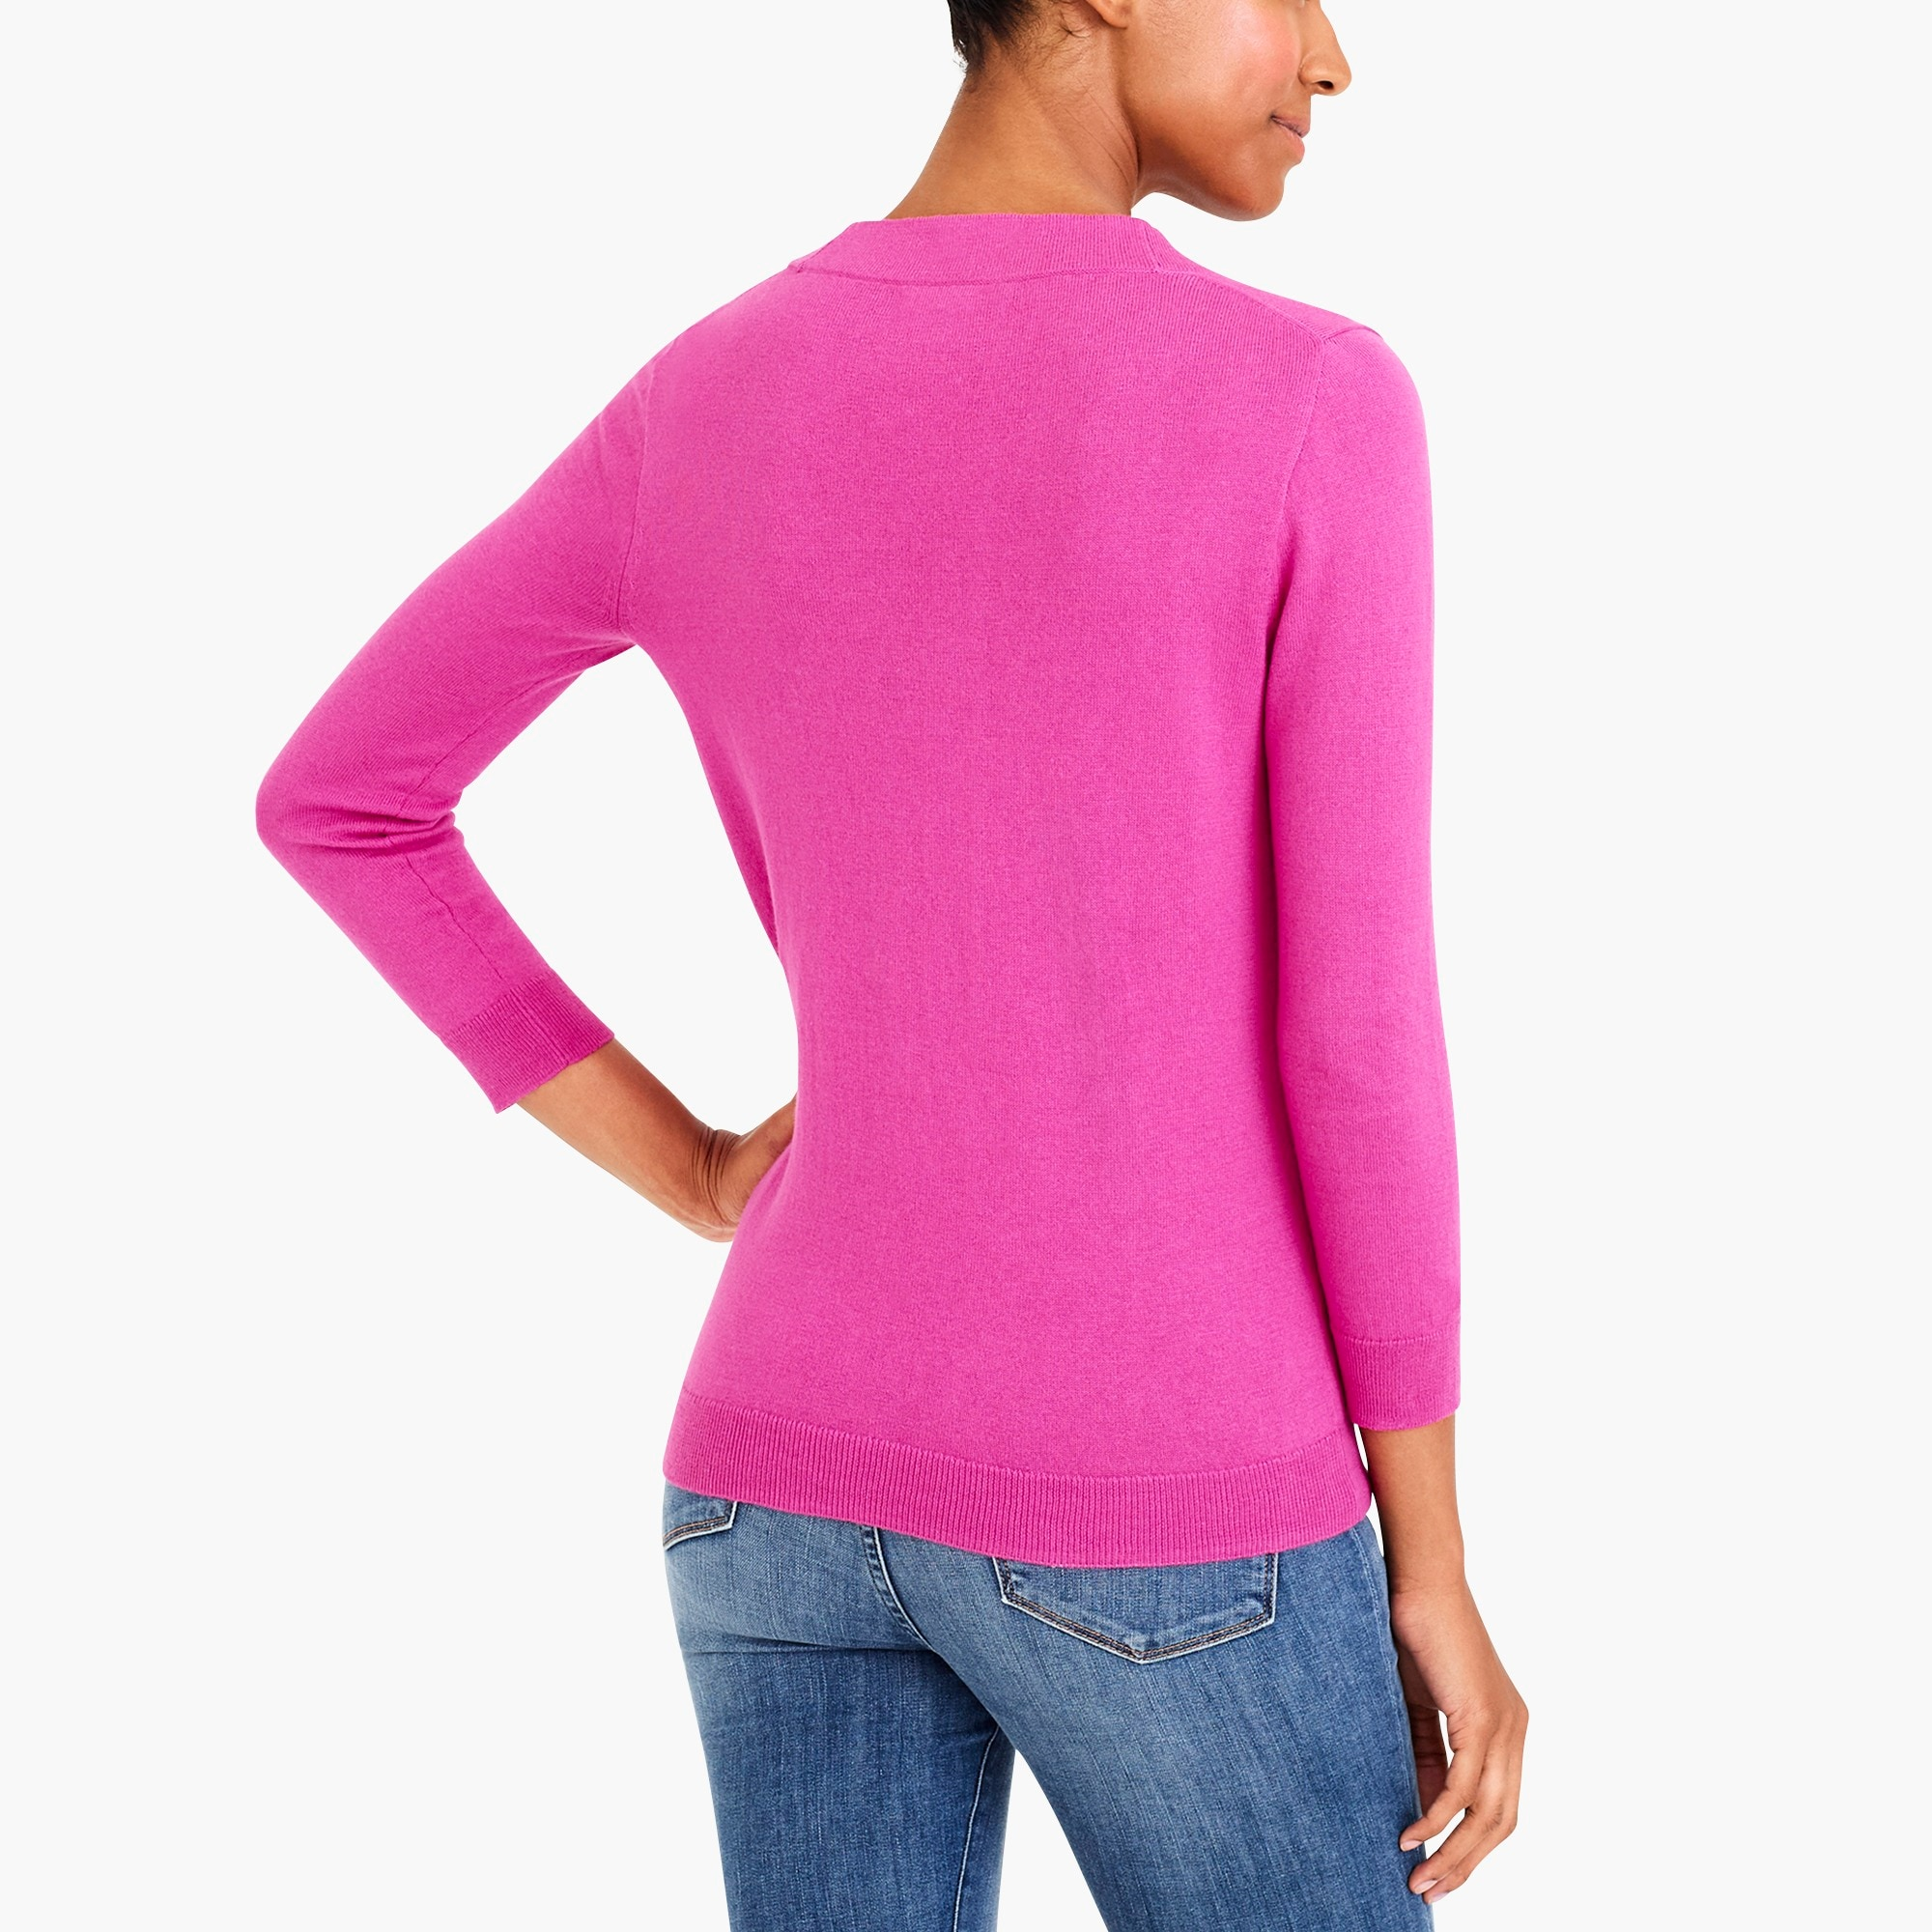 Image 2 for Bow v-neck sweater